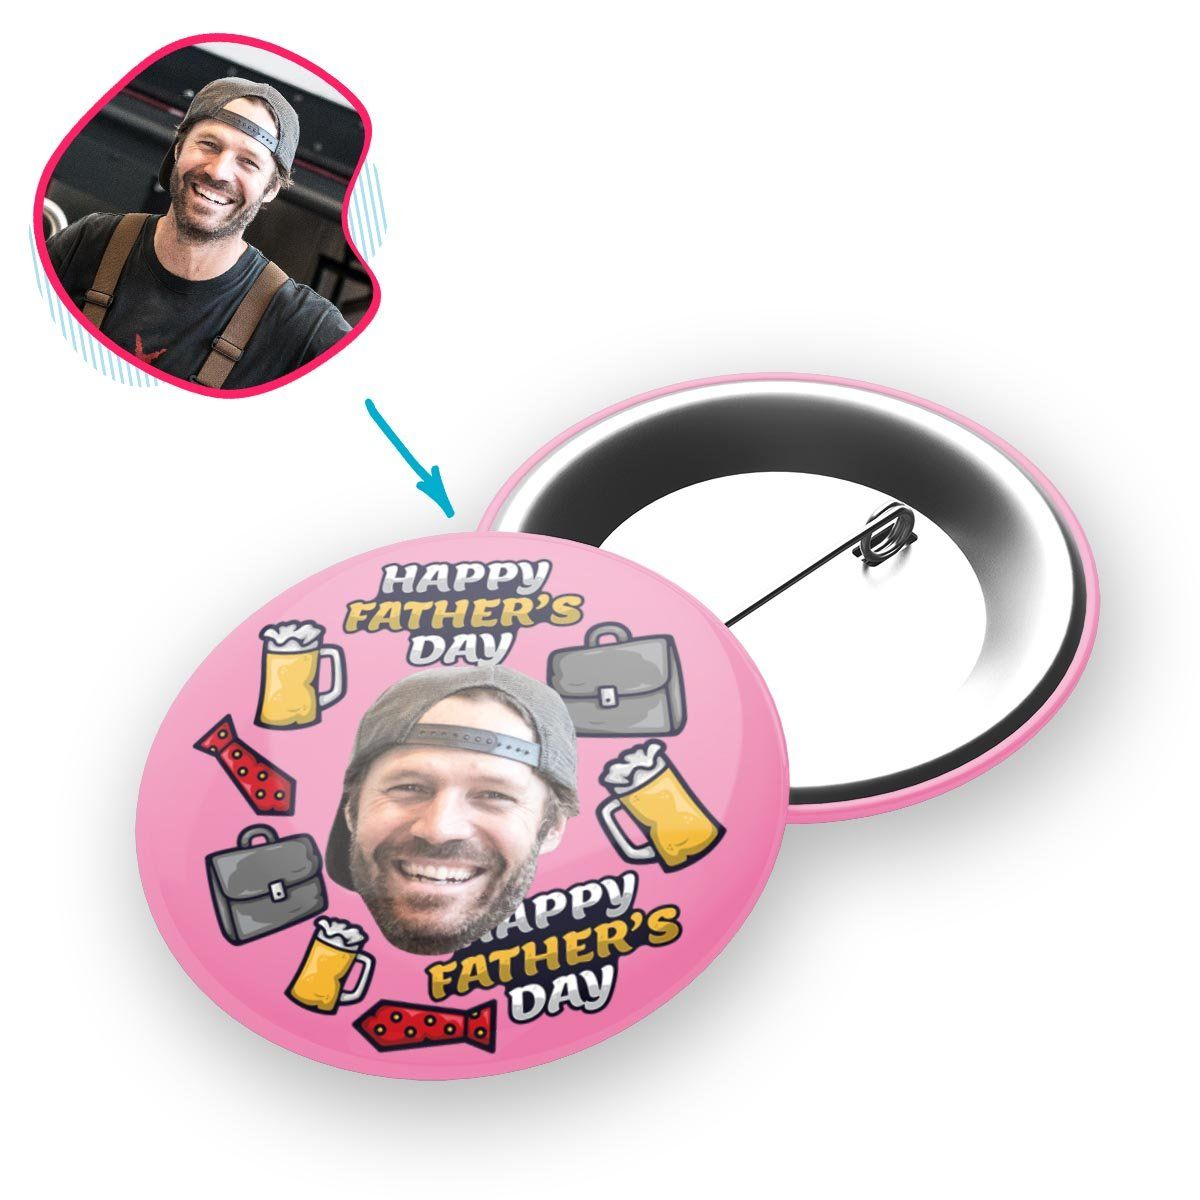 Pink Fathers Day personalized pin with photo of face printed on it